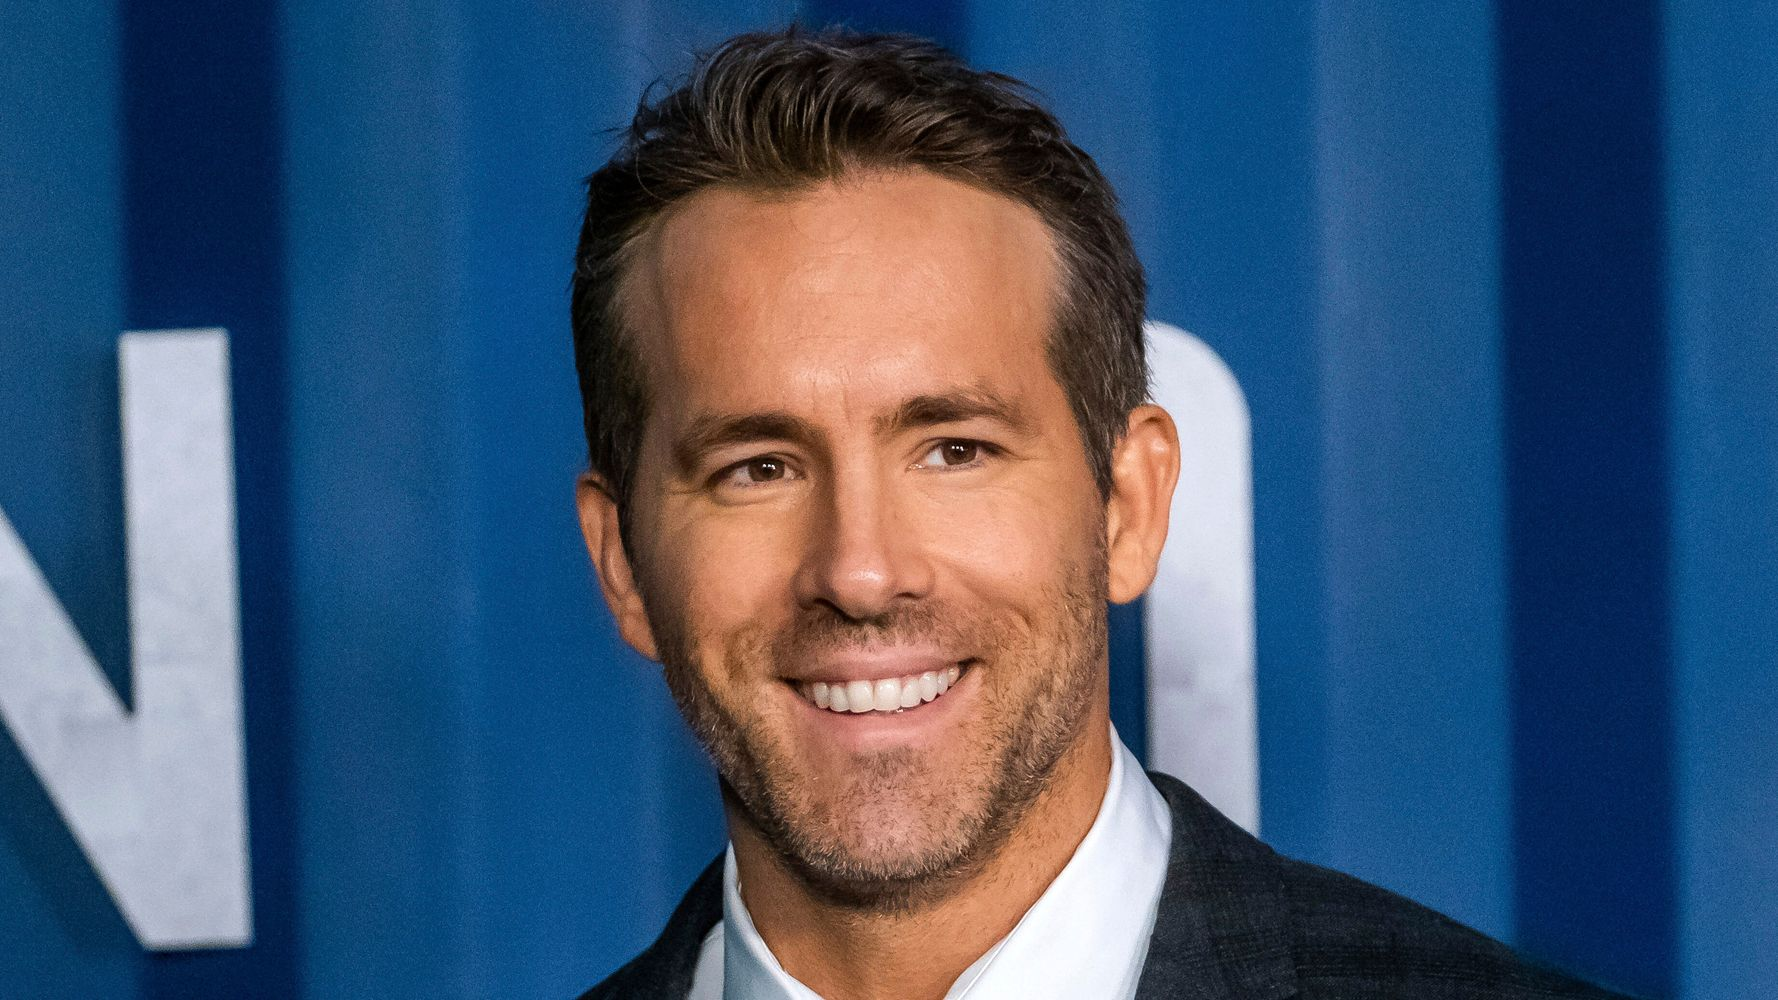 Ryan Reynolds Responds To Street Naming Petition In 'The Most Ryan Reynolds Way'